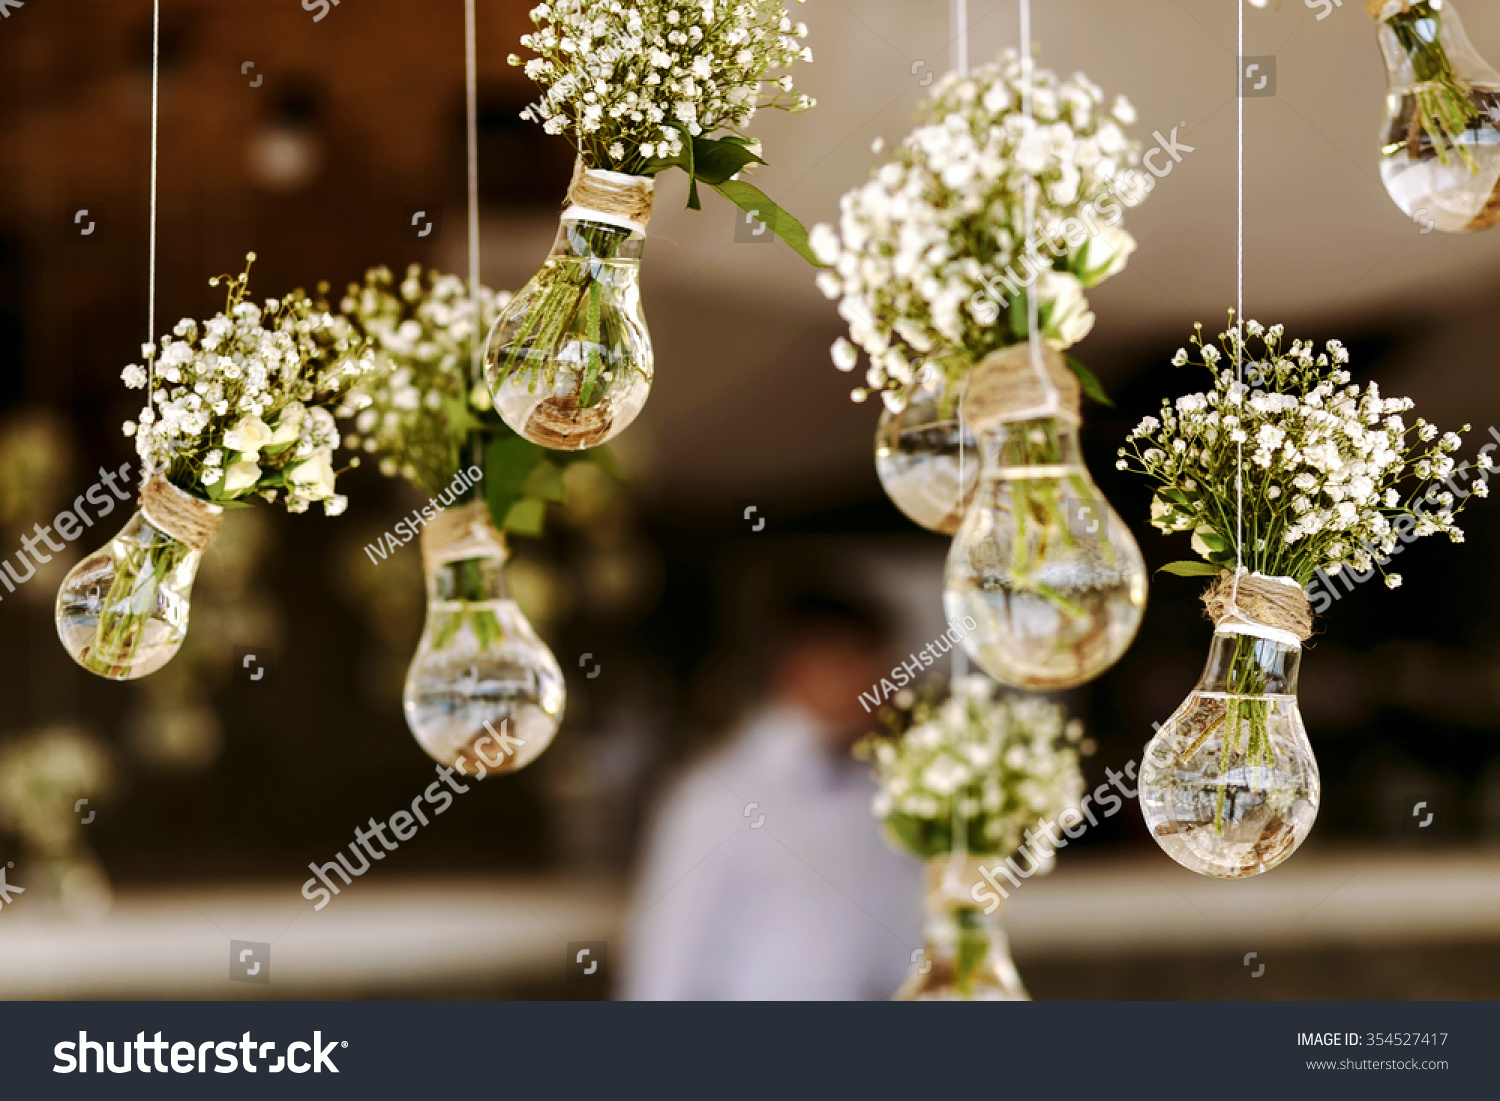 Bouquet original ranunculus flower original x original x original wedding floral decoration in the form of minivases and bouquets of flowers hanging reviewsmspy